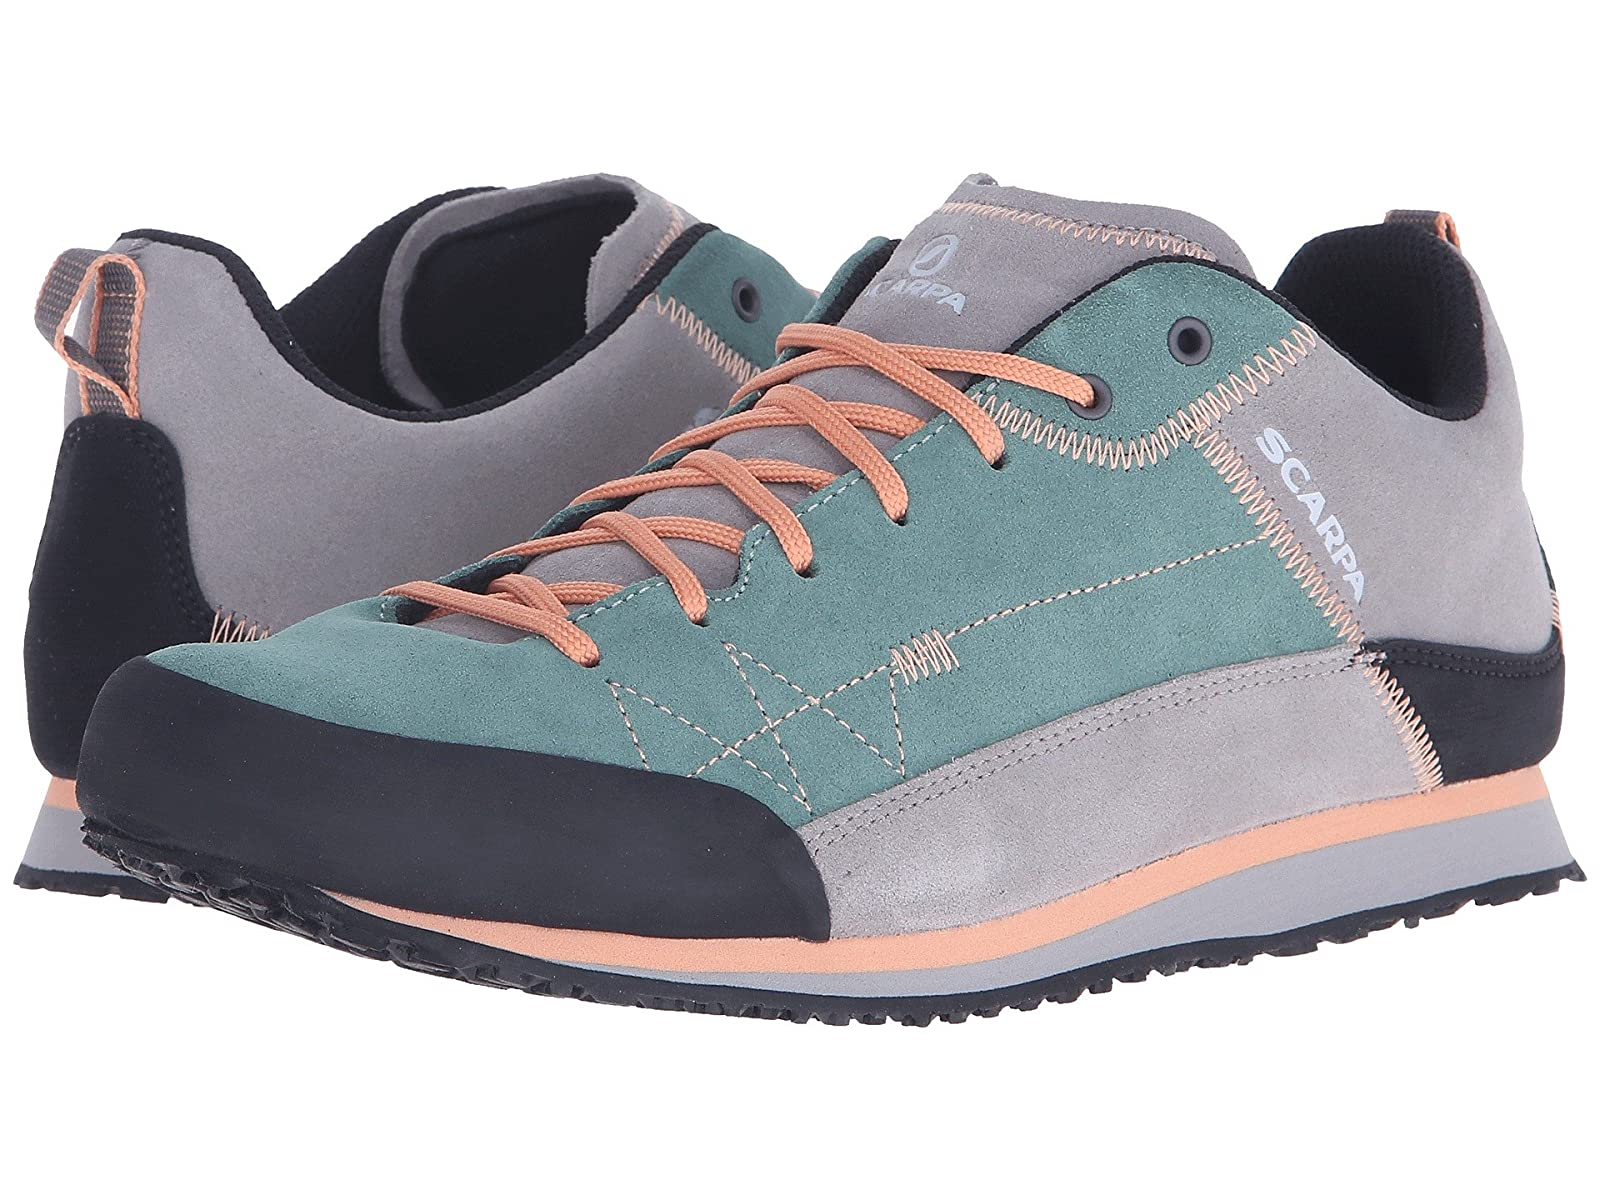 Scarpa CosmoCheap and distinctive eye-catching shoes